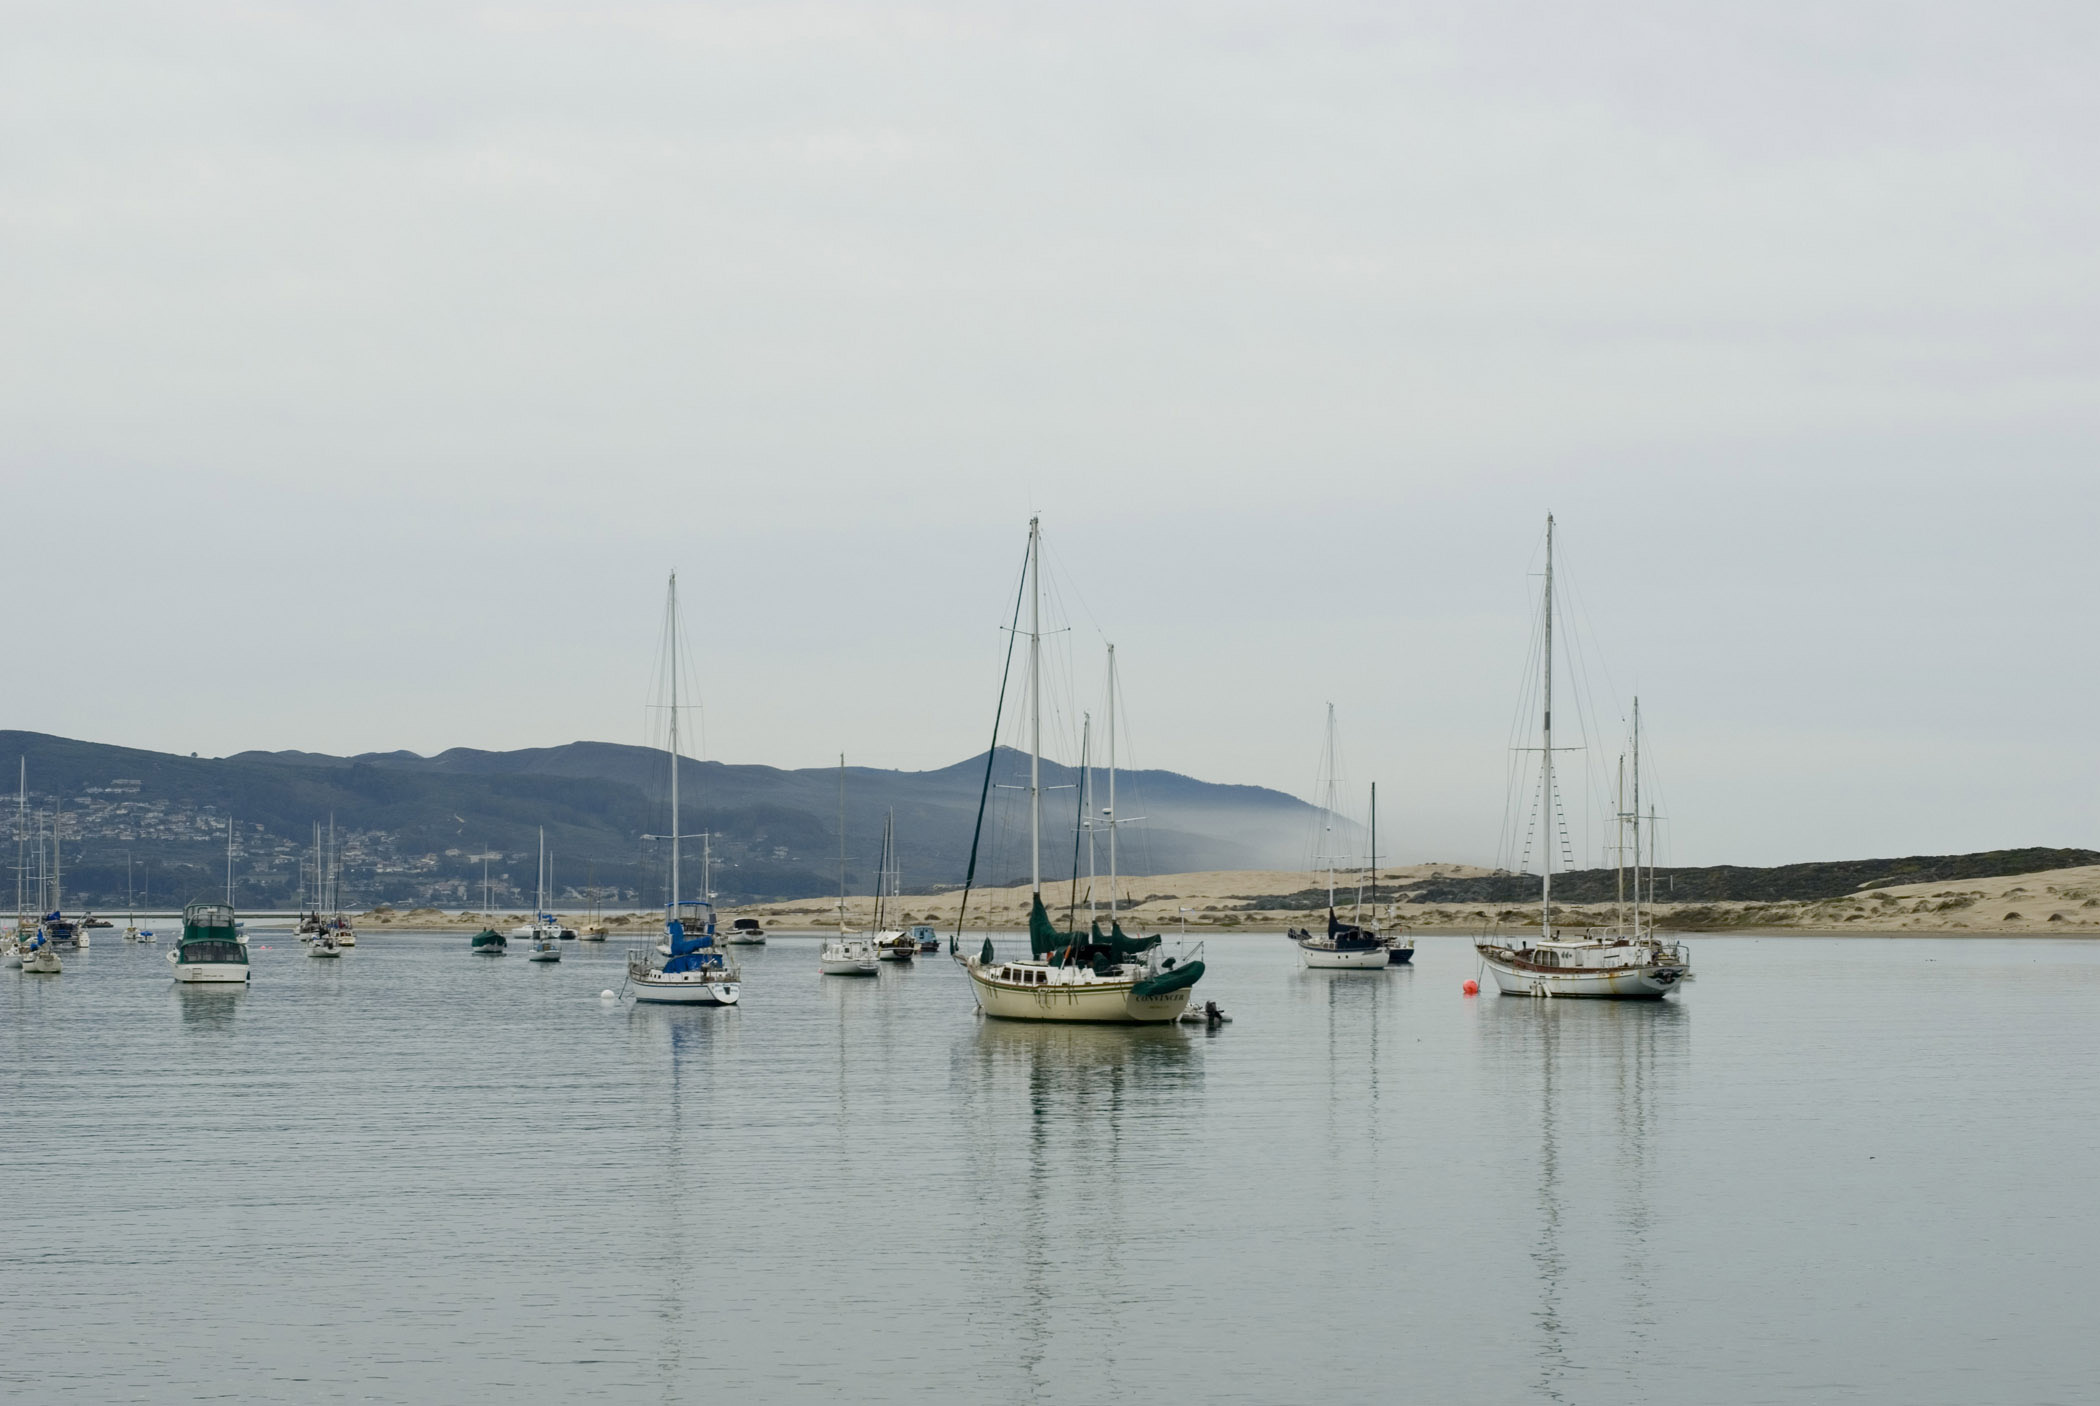 Sailboats Anchored in Morro Bay, California Under Overcast Sky